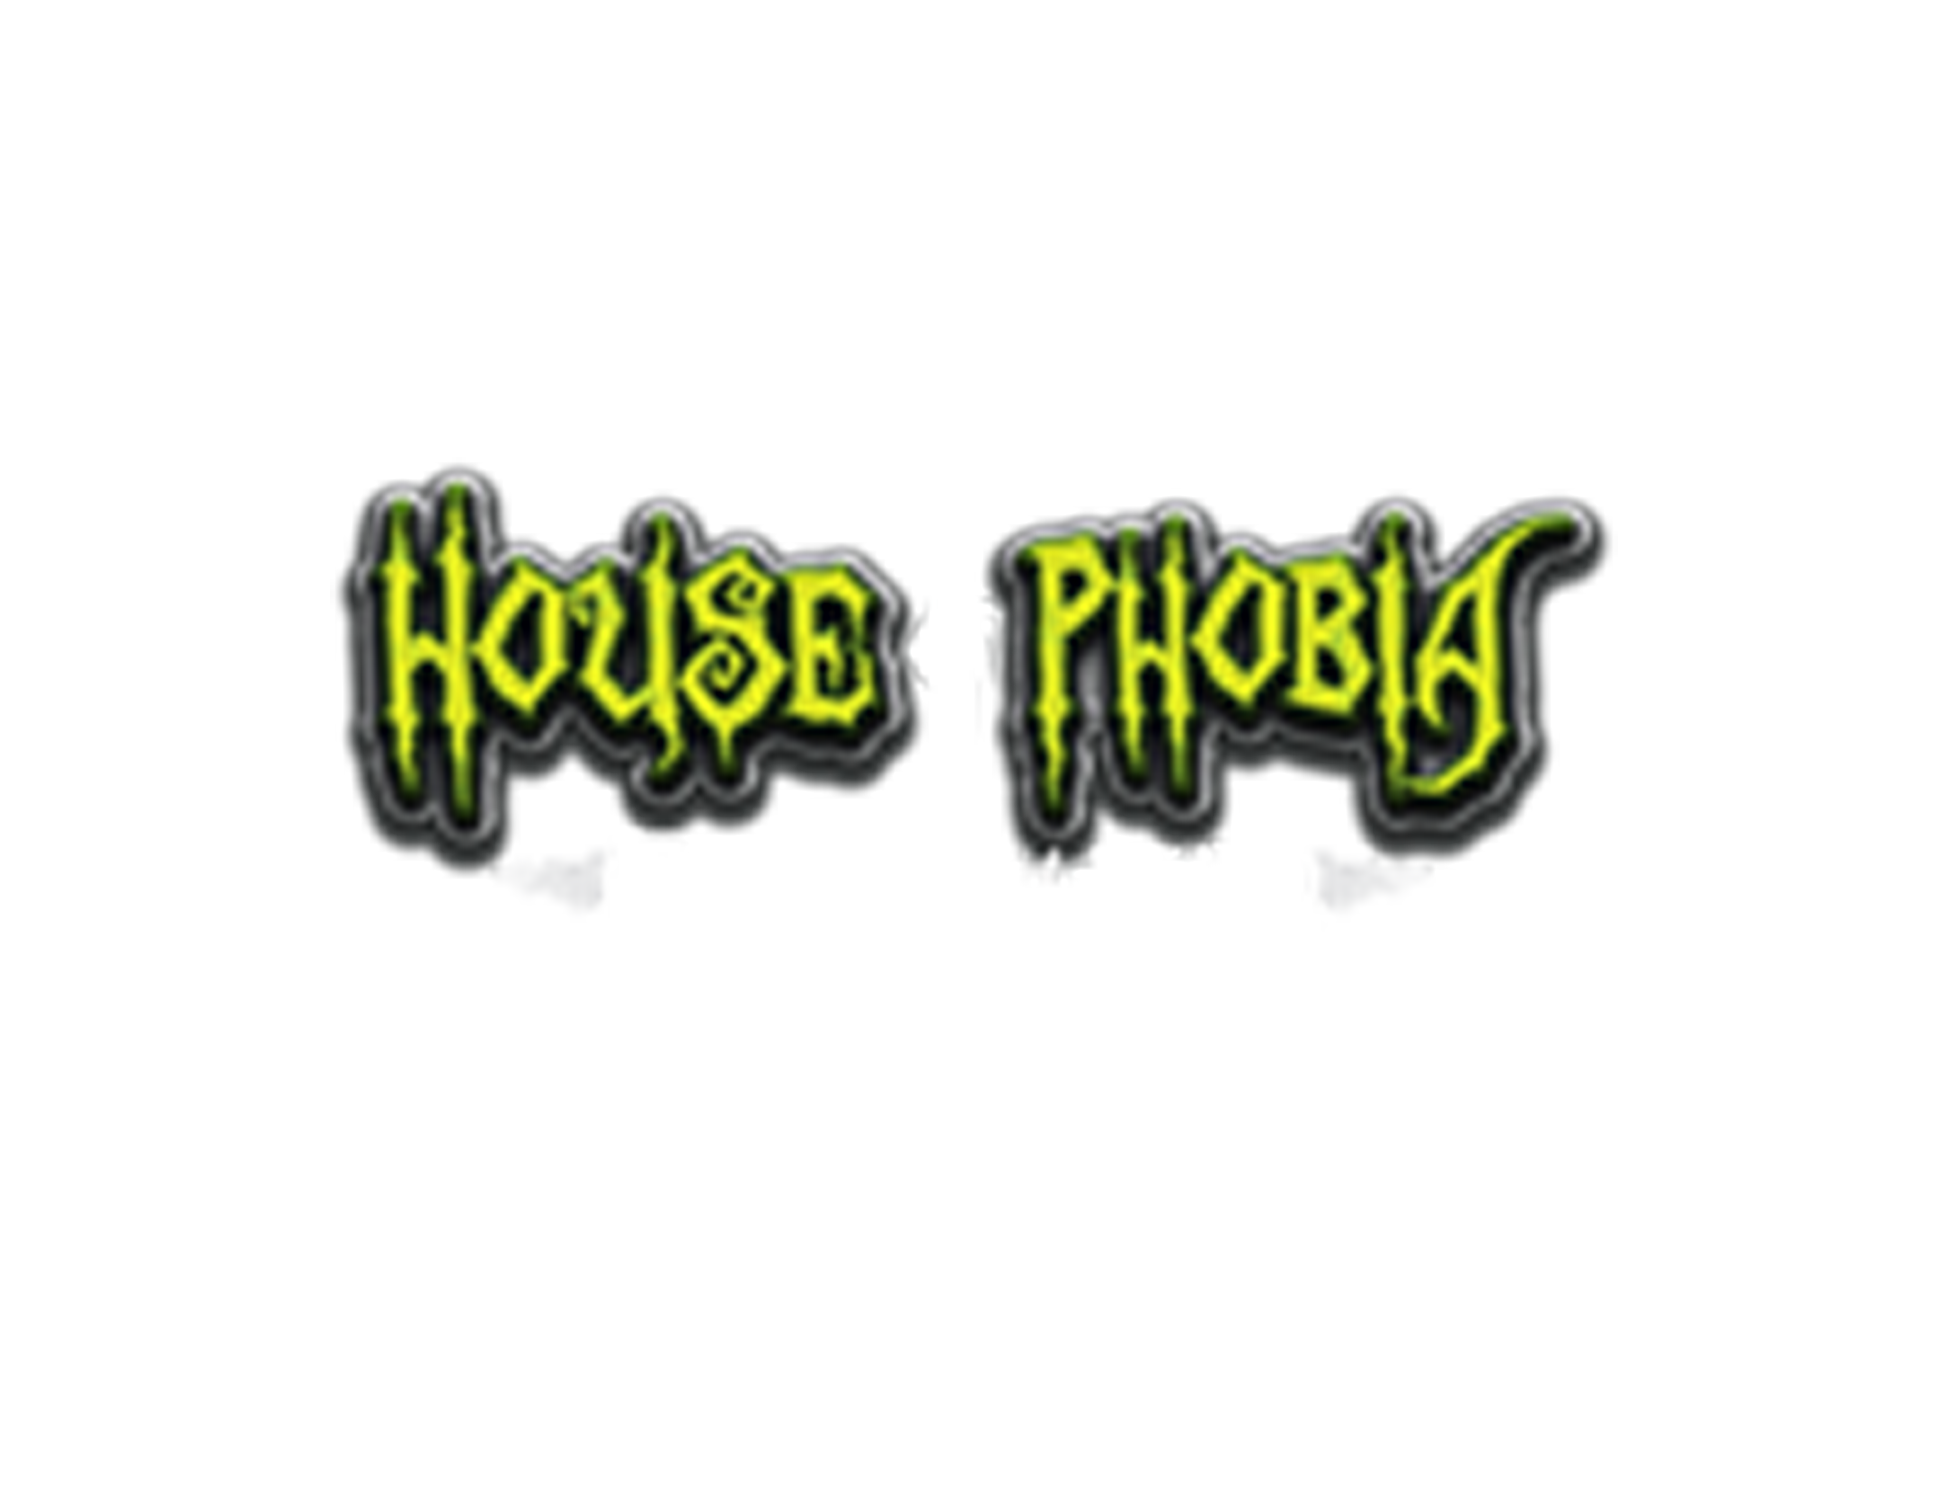 House of Phobia